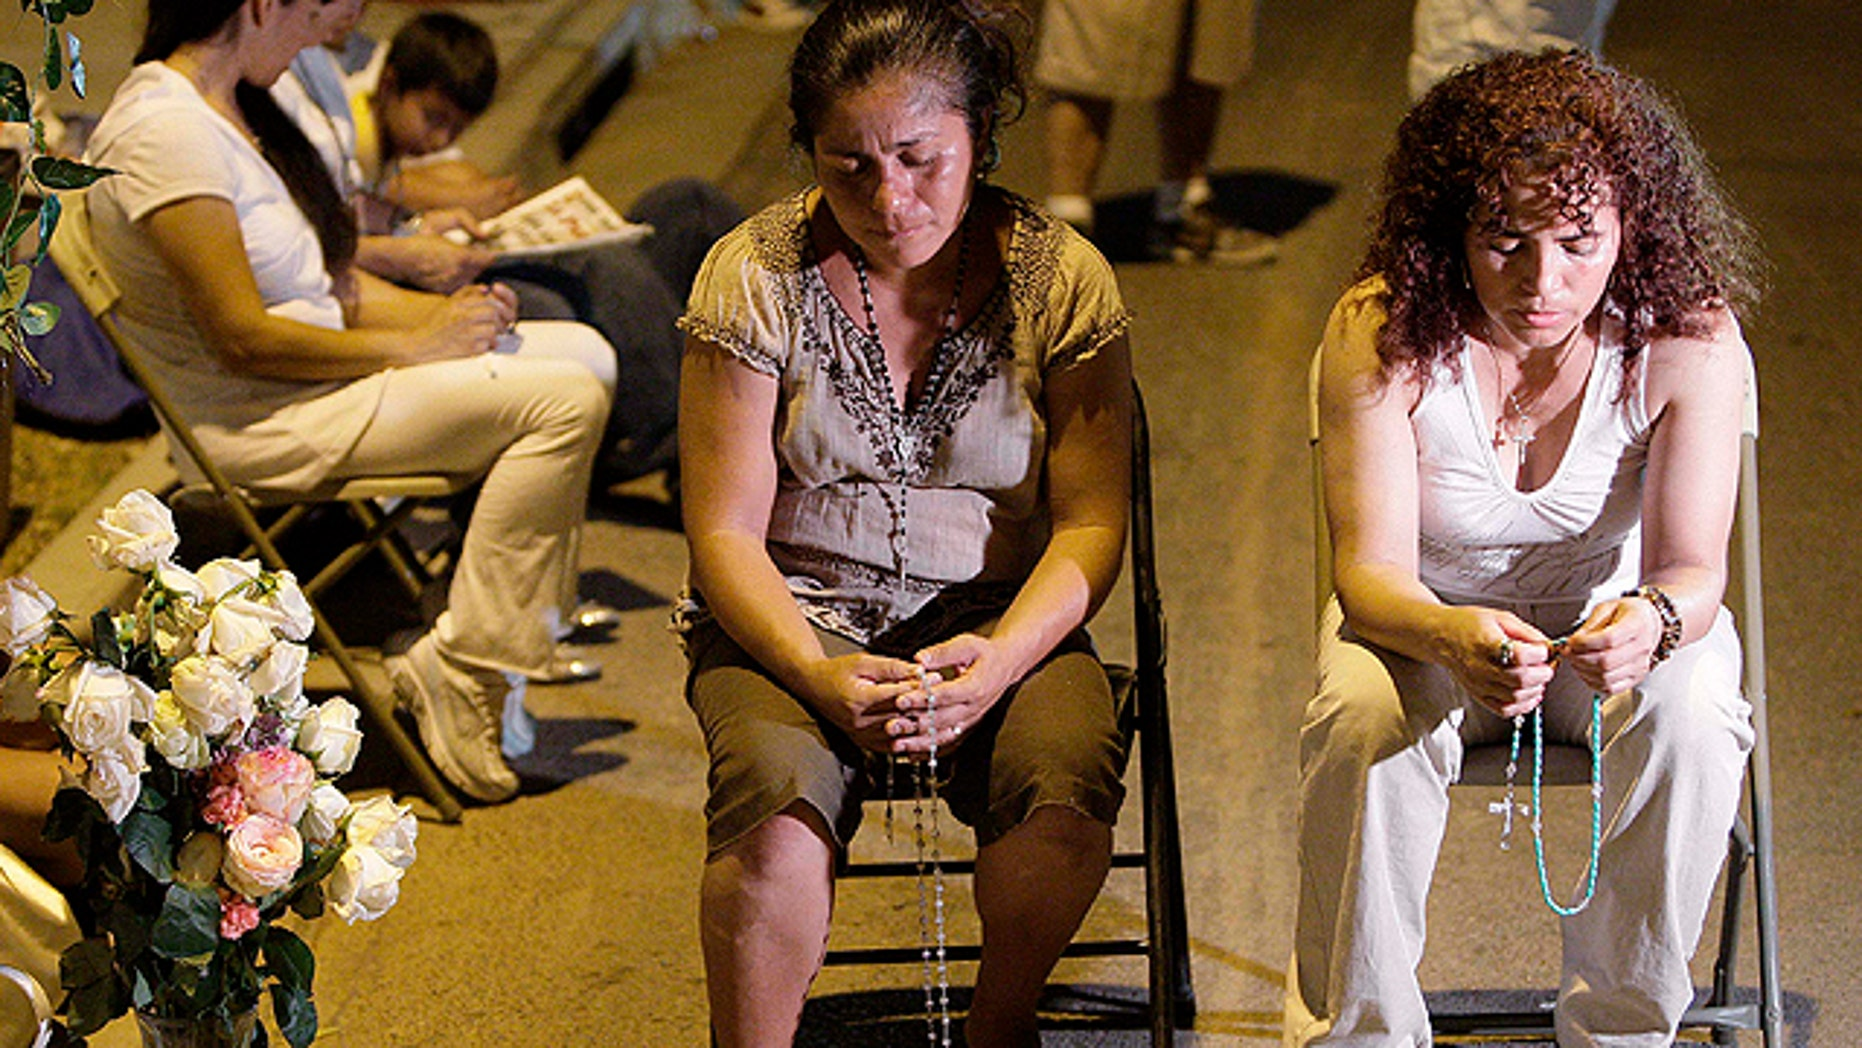 Women pray as they join dozens attending an overnight vigil at the Arizona Capitol late Wednesday in Phoenix, only hours after portions of Arizona's new immigration law, S.B. 1070, was blocked by a federal judge.